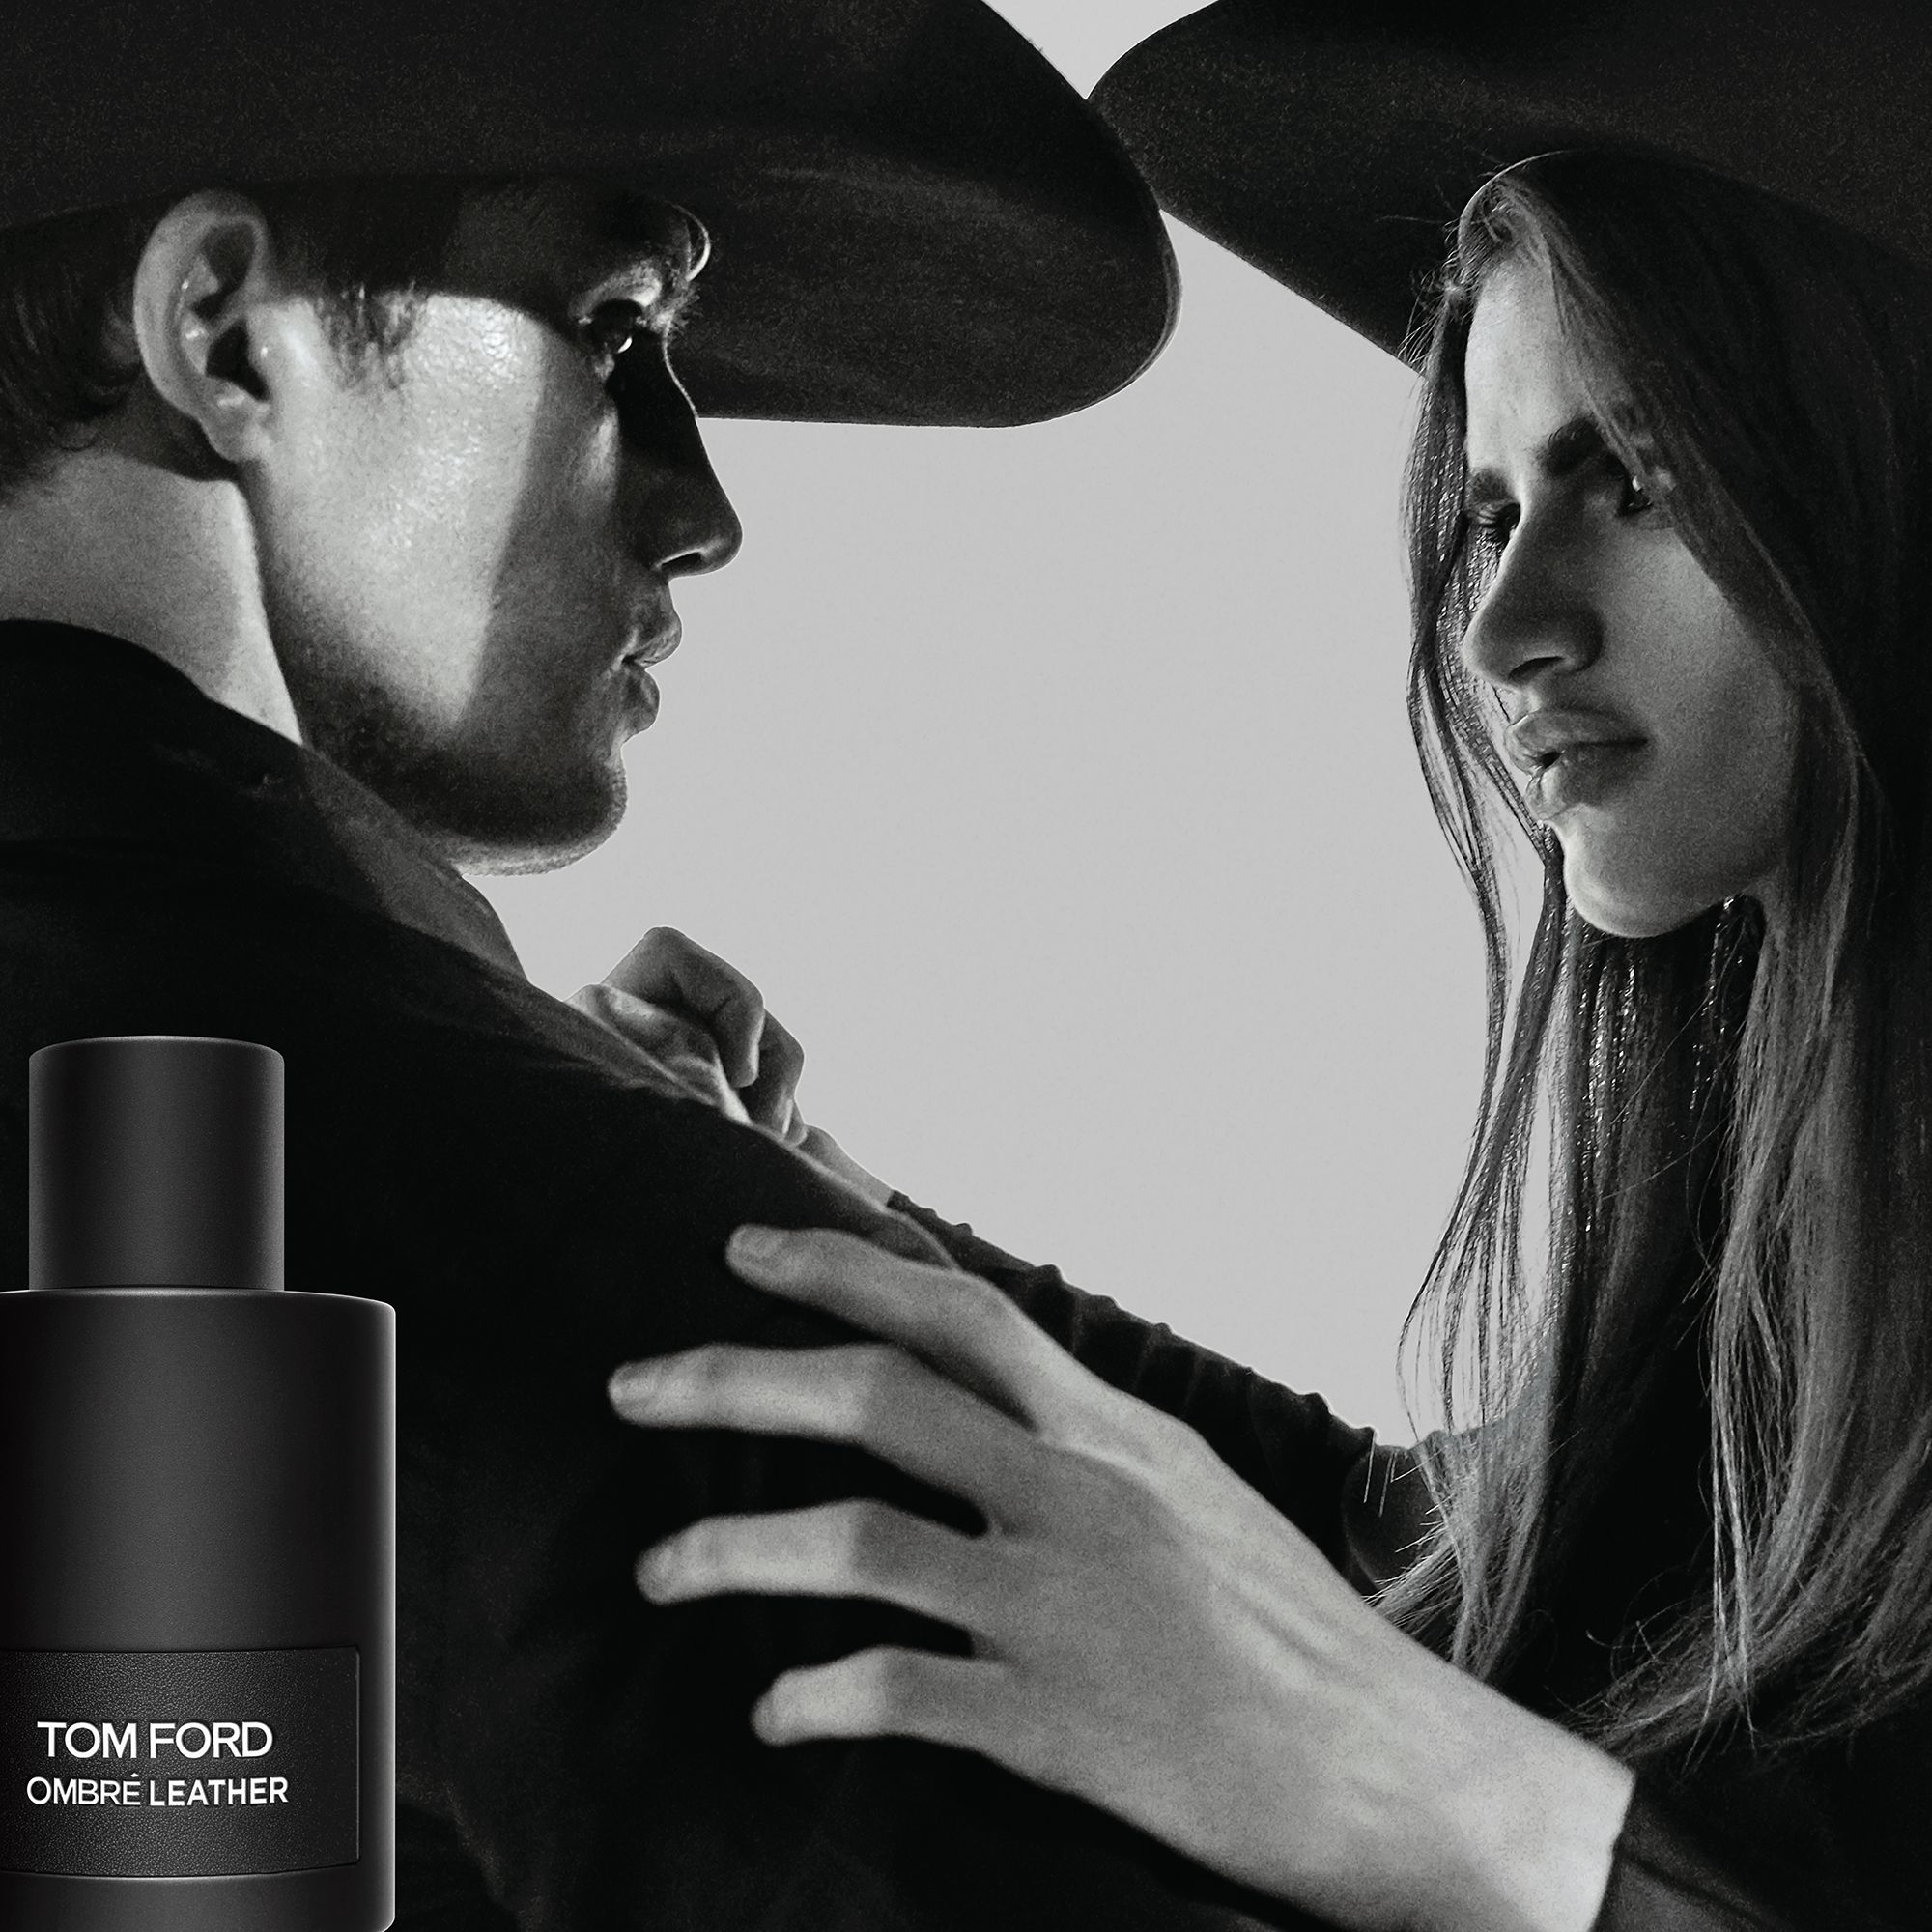 dde640b4d2a2 The desert heart of the west wrapped in leather. Discover the new Ombré  Leather.  TOMFORD  TFOMBRELEATHER